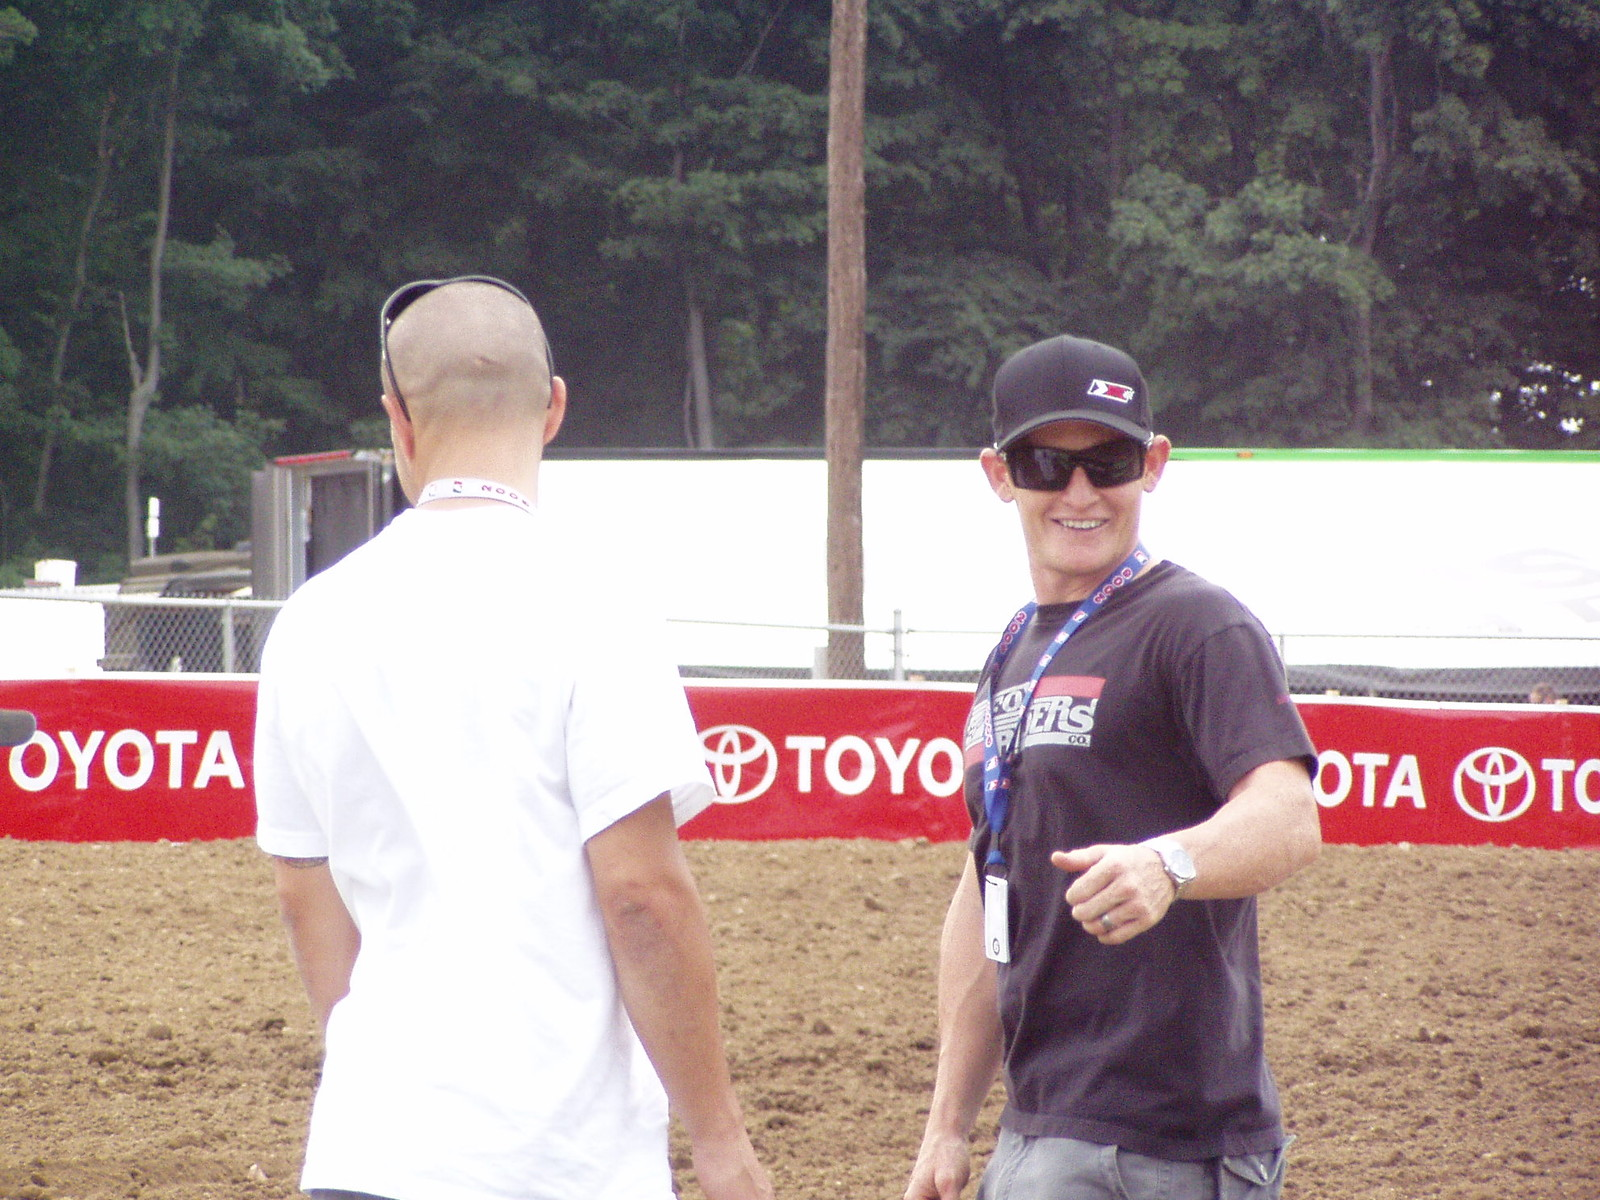 RC & IT talking with fans at Red Bud - SIMX - Motocross Pictures - Vital MX